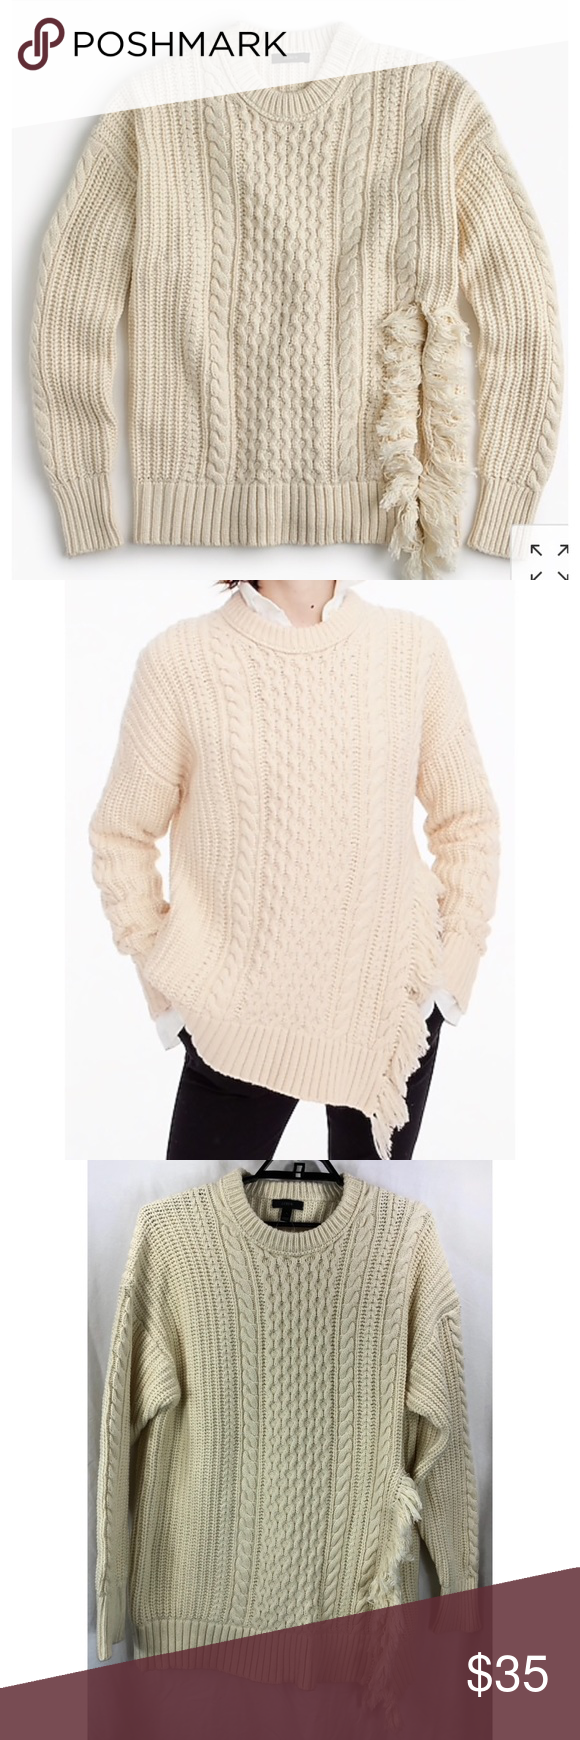 96cb3cc4fb0610 J Crew fringe cable knit pullover sweater 7505 J Crew Ivory fringe detail cable  knit pullover sweater 7505 original retail price $118 style: H3677 oversize  ...